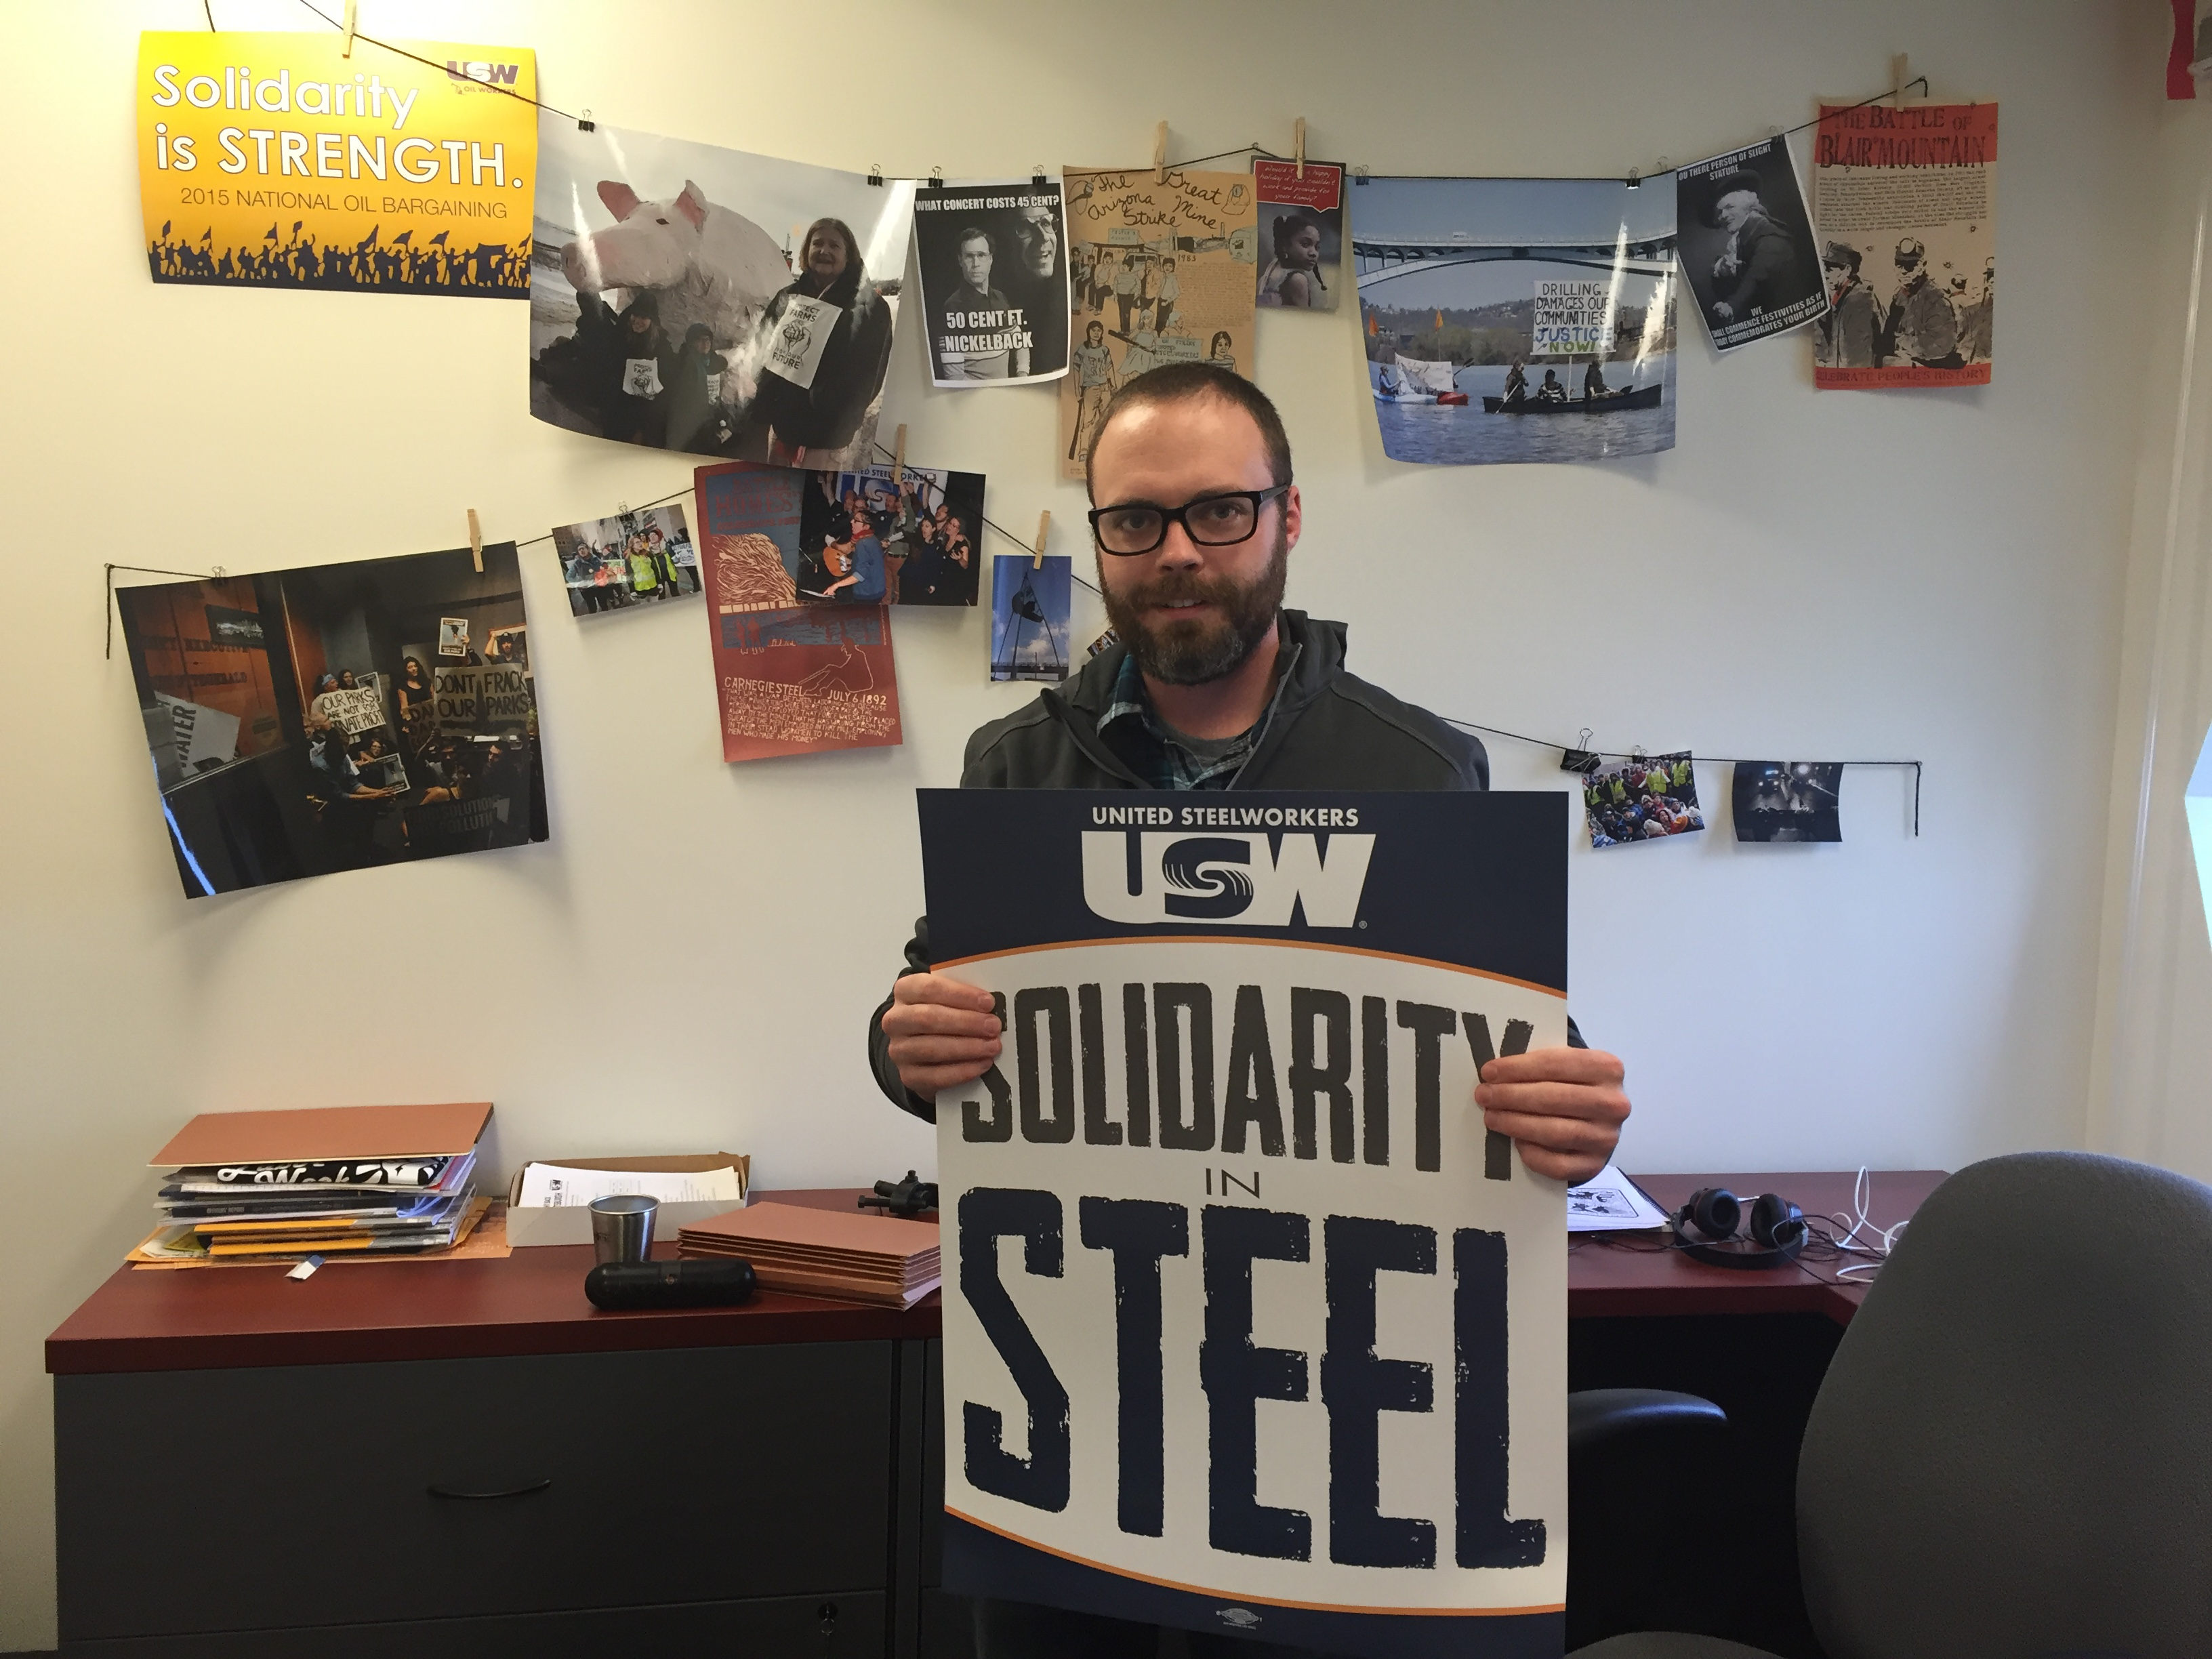 Patrick Young of the United Steelworkers holds a sign of solidarity in his office. Photograph: Alicia Green